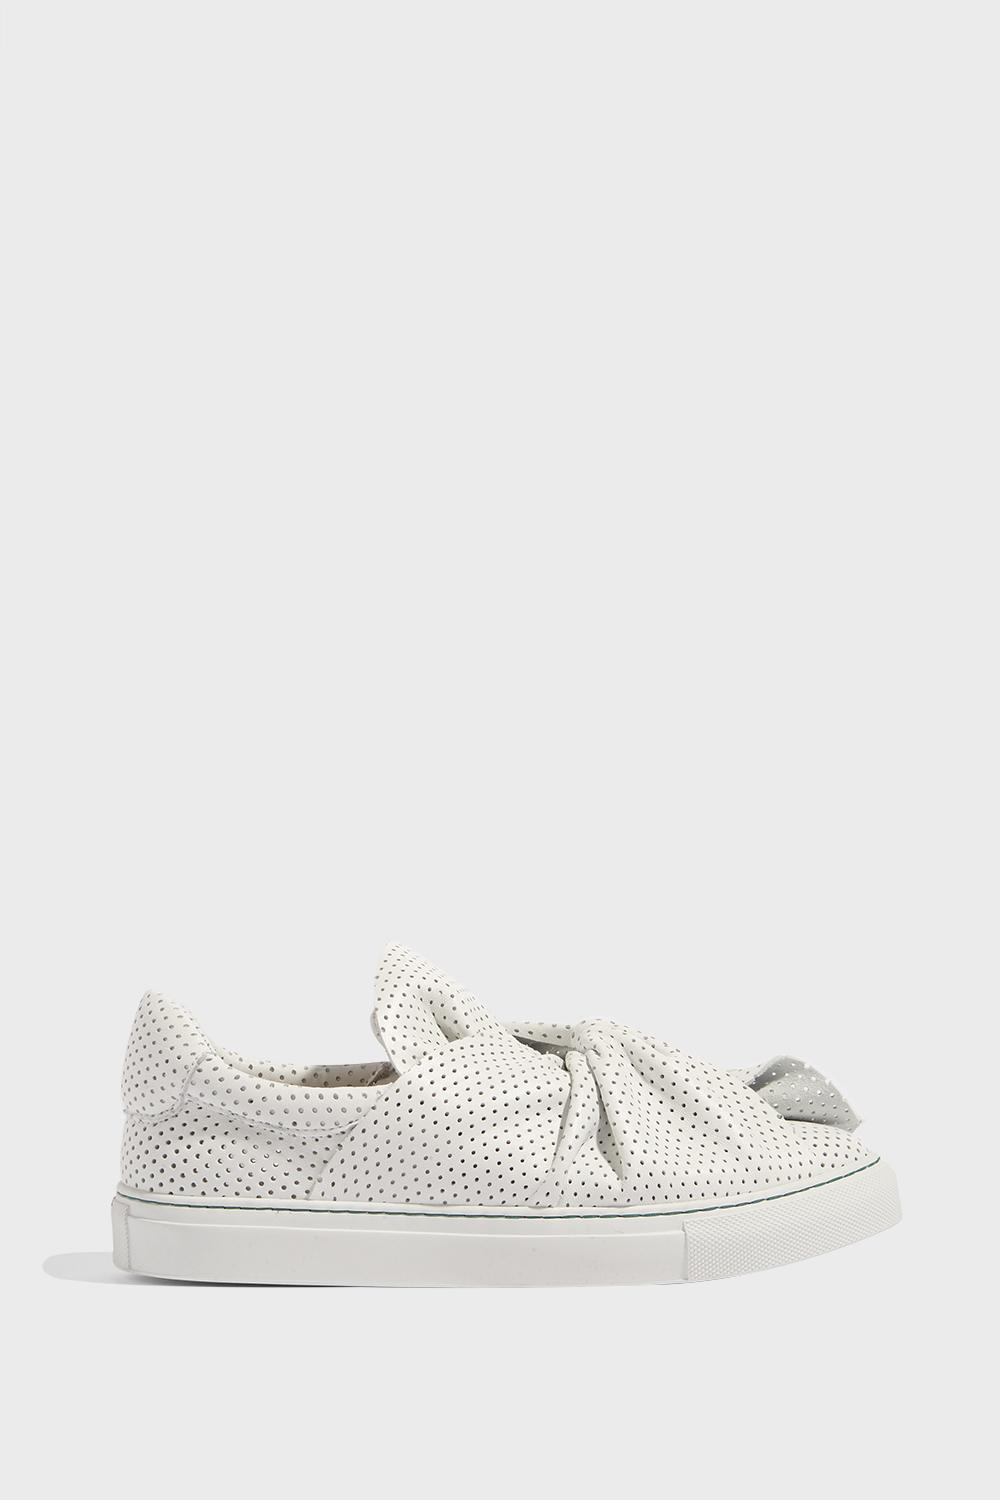 PORTS 1961 1961 BOW PERFORATED TRAINERS, SIZE FR36, WOMEN, IVORY